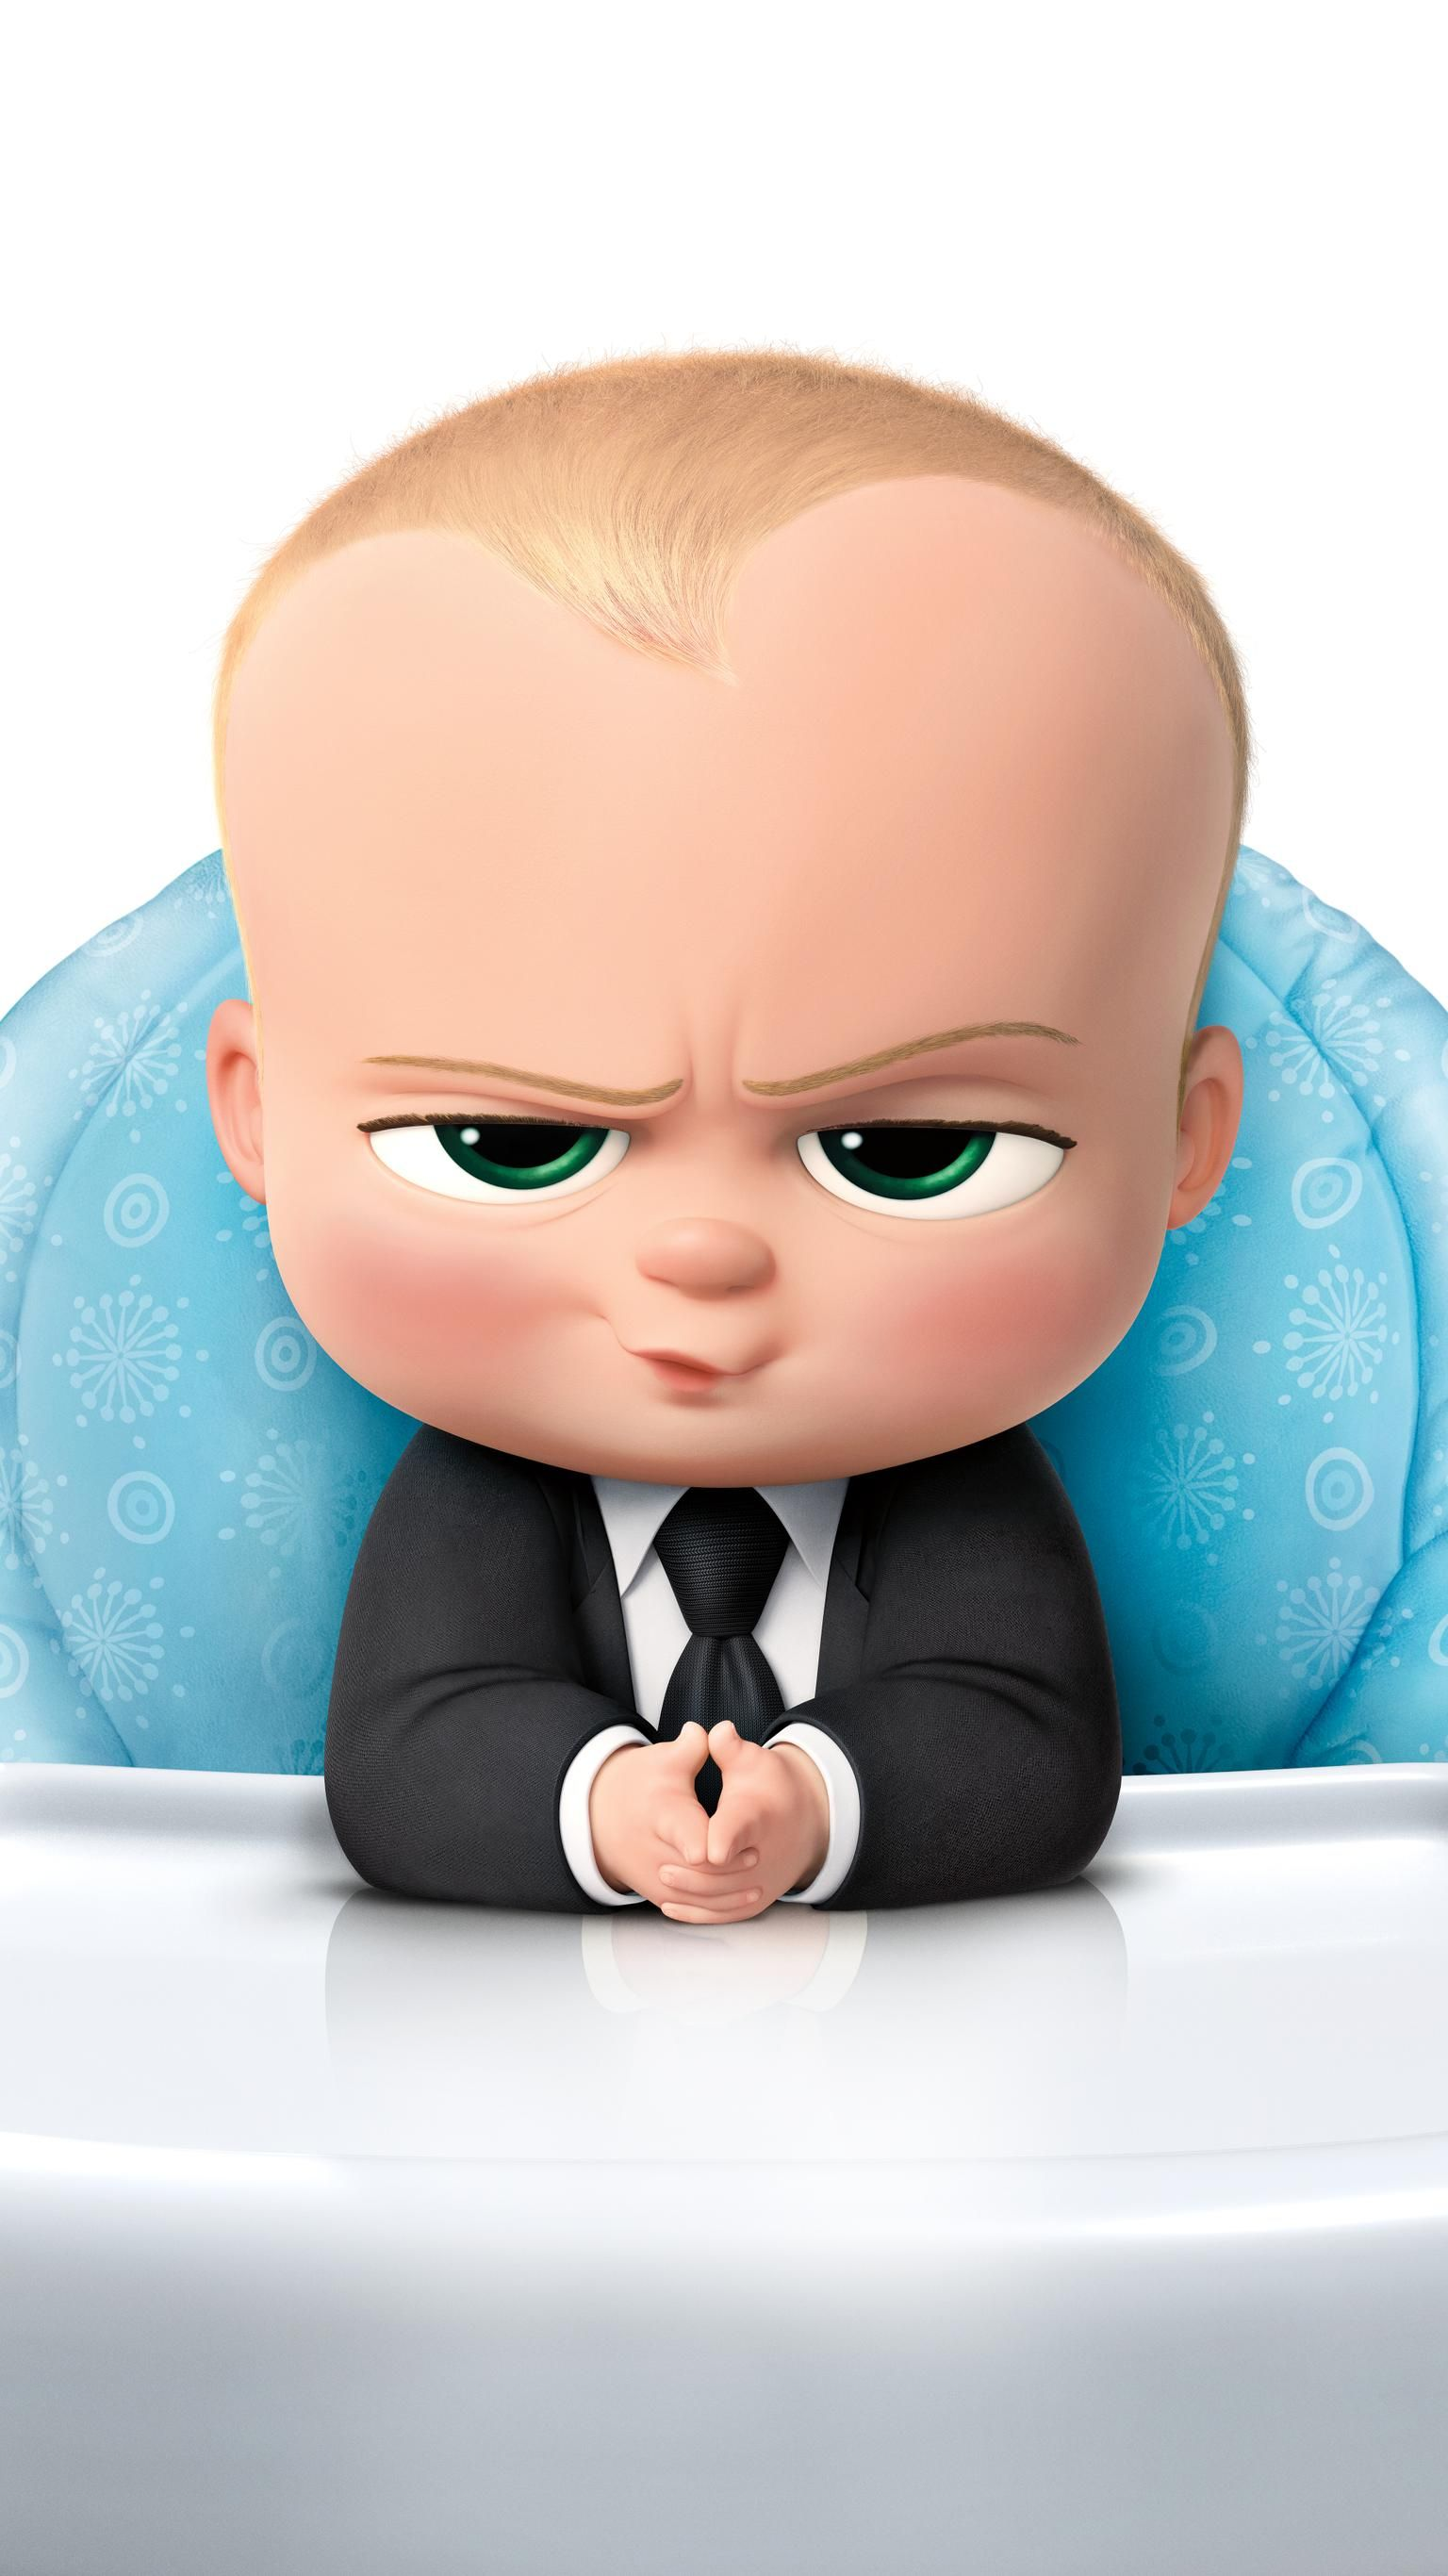 The Boss Baby 2017 Phone Wallpaper Moviemania Baby Wallpaper Baby Products 2017 Boss Baby